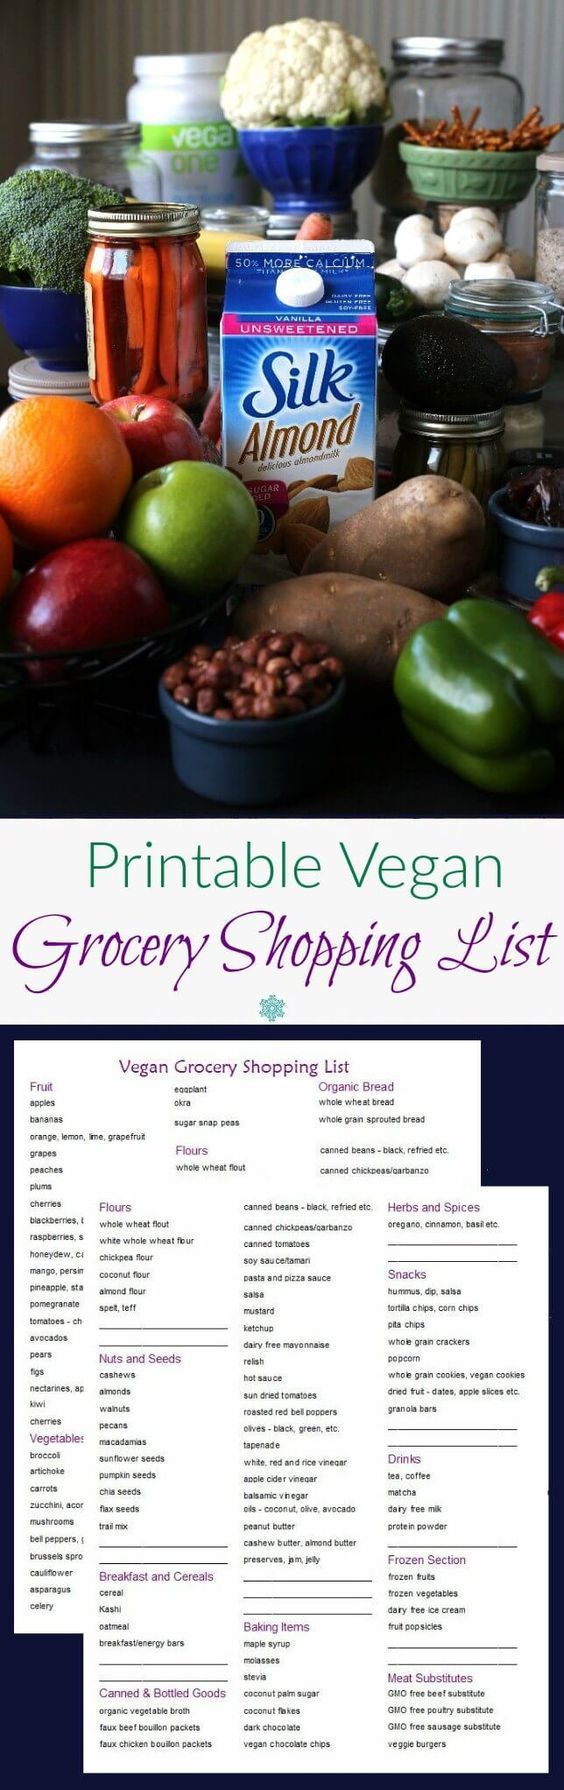 Best 25+ Grocery lists ideas on Pinterest | Grocery shopping lists ...